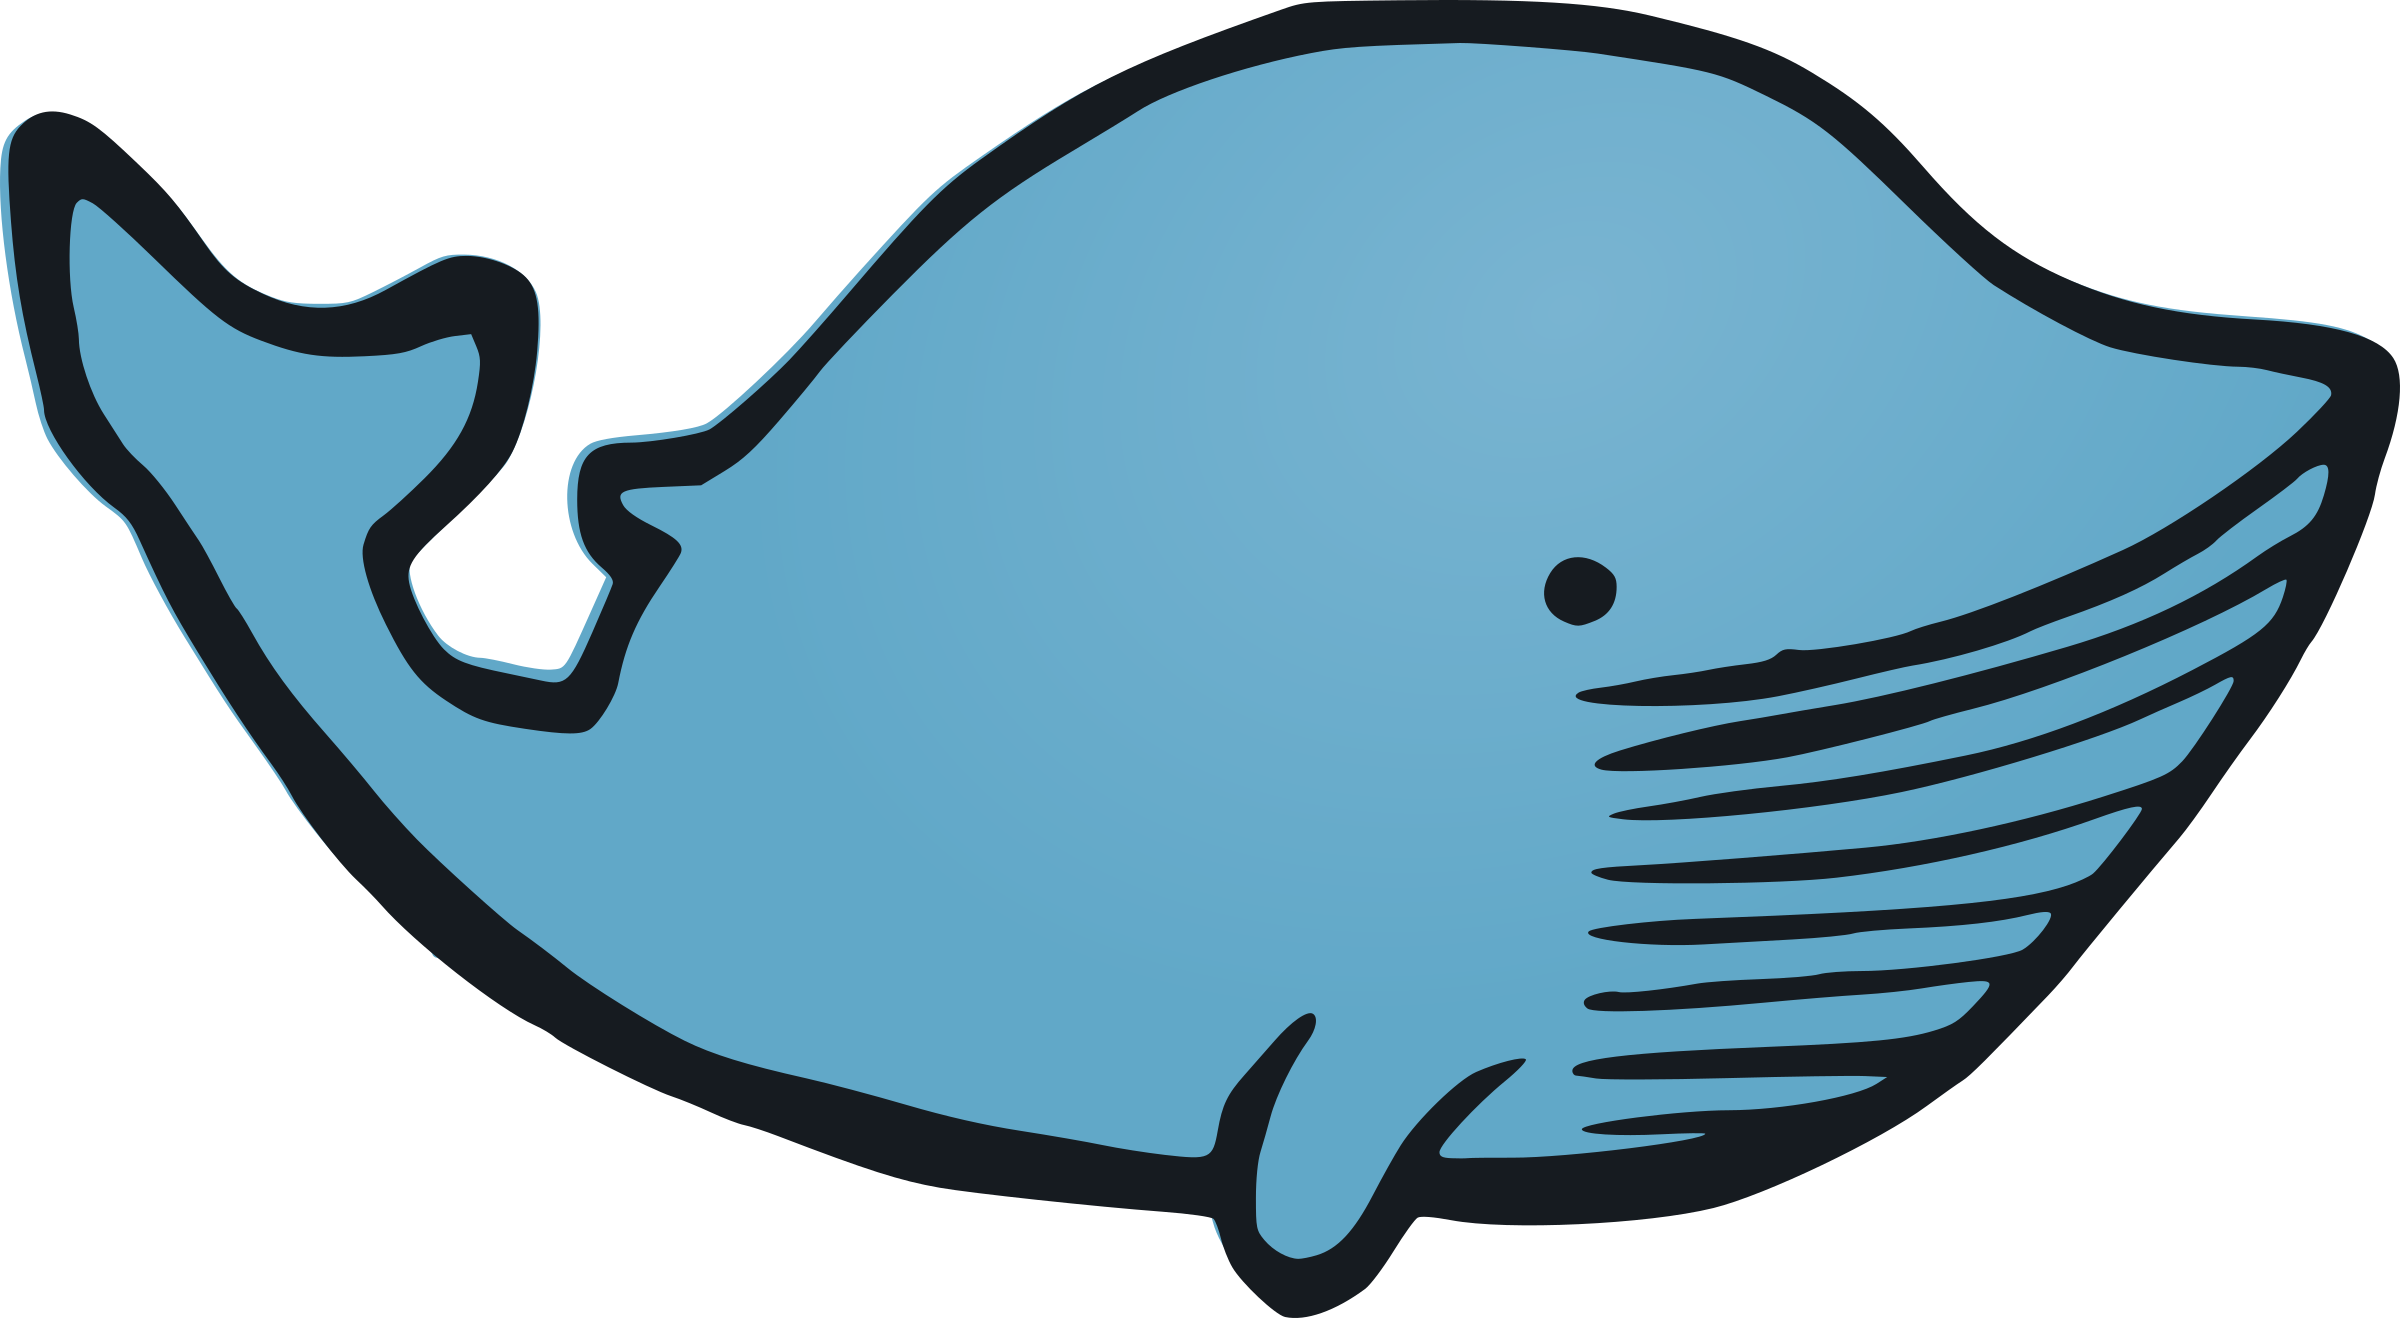 Homongous clipart graphic freeuse download Whale clipart humongous for free download and use images in ... graphic freeuse download